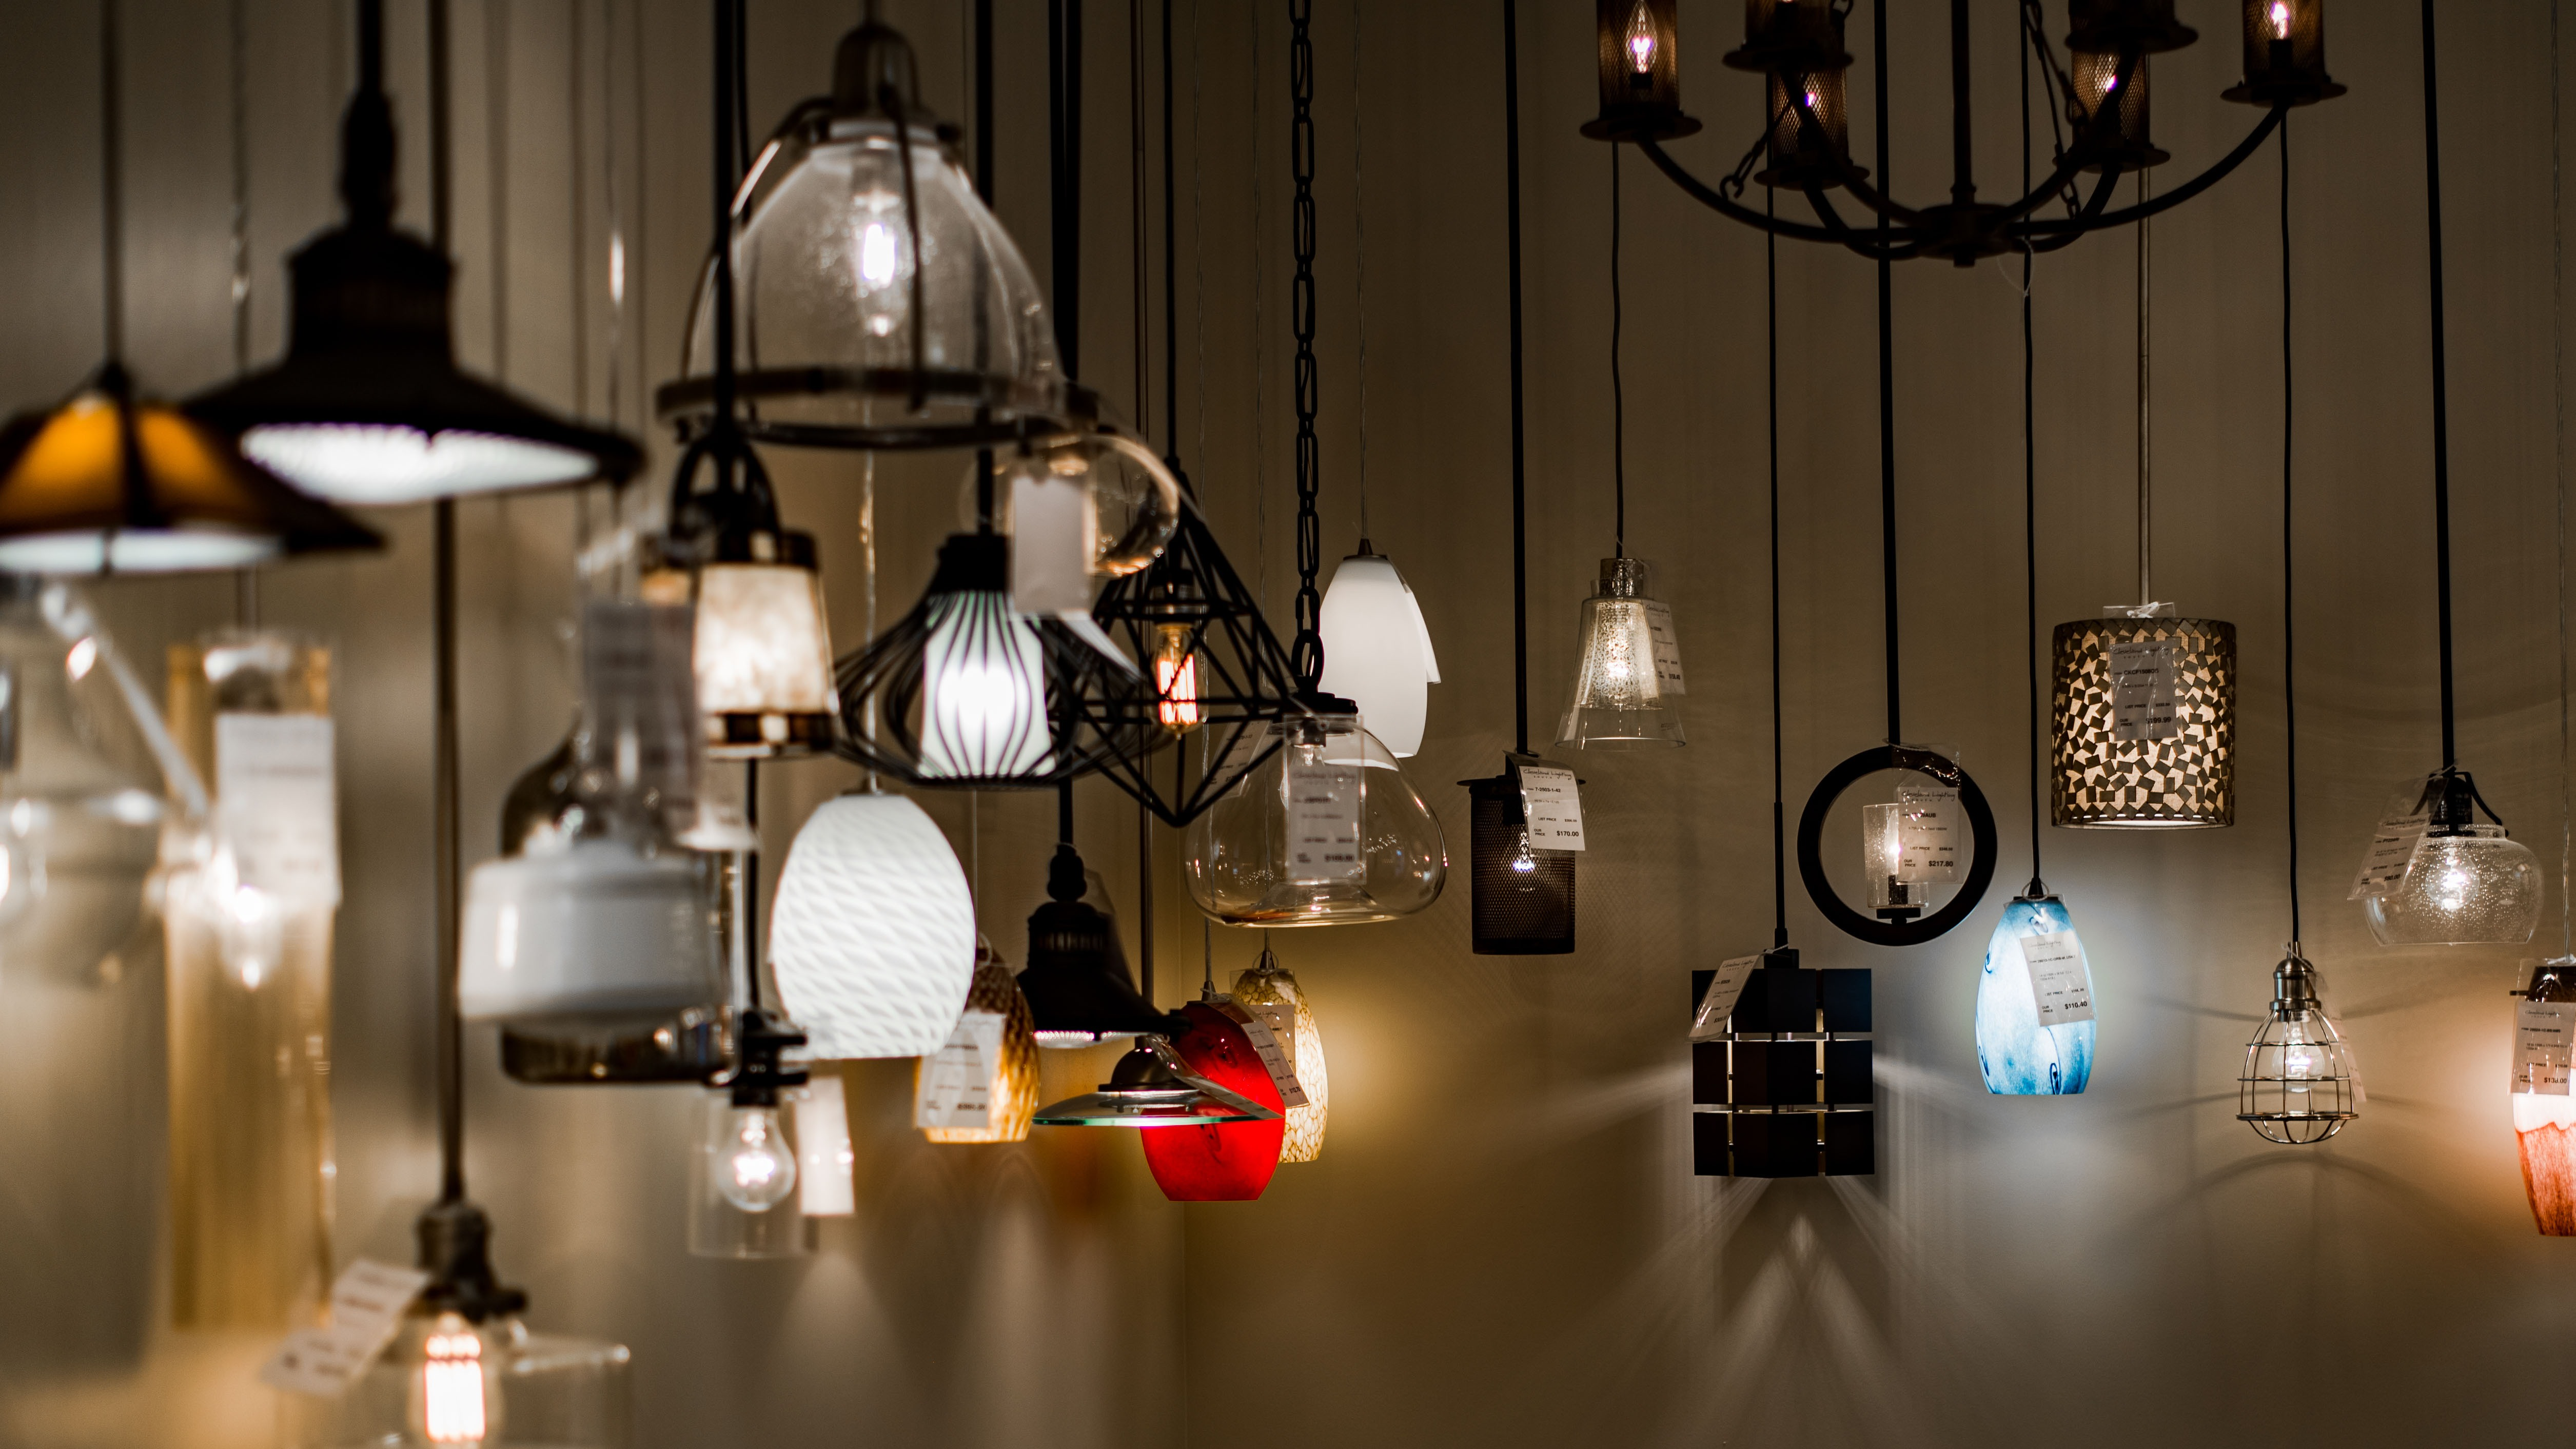 Lighting by design canton ohio - Cleveland Lighting View Larger Map